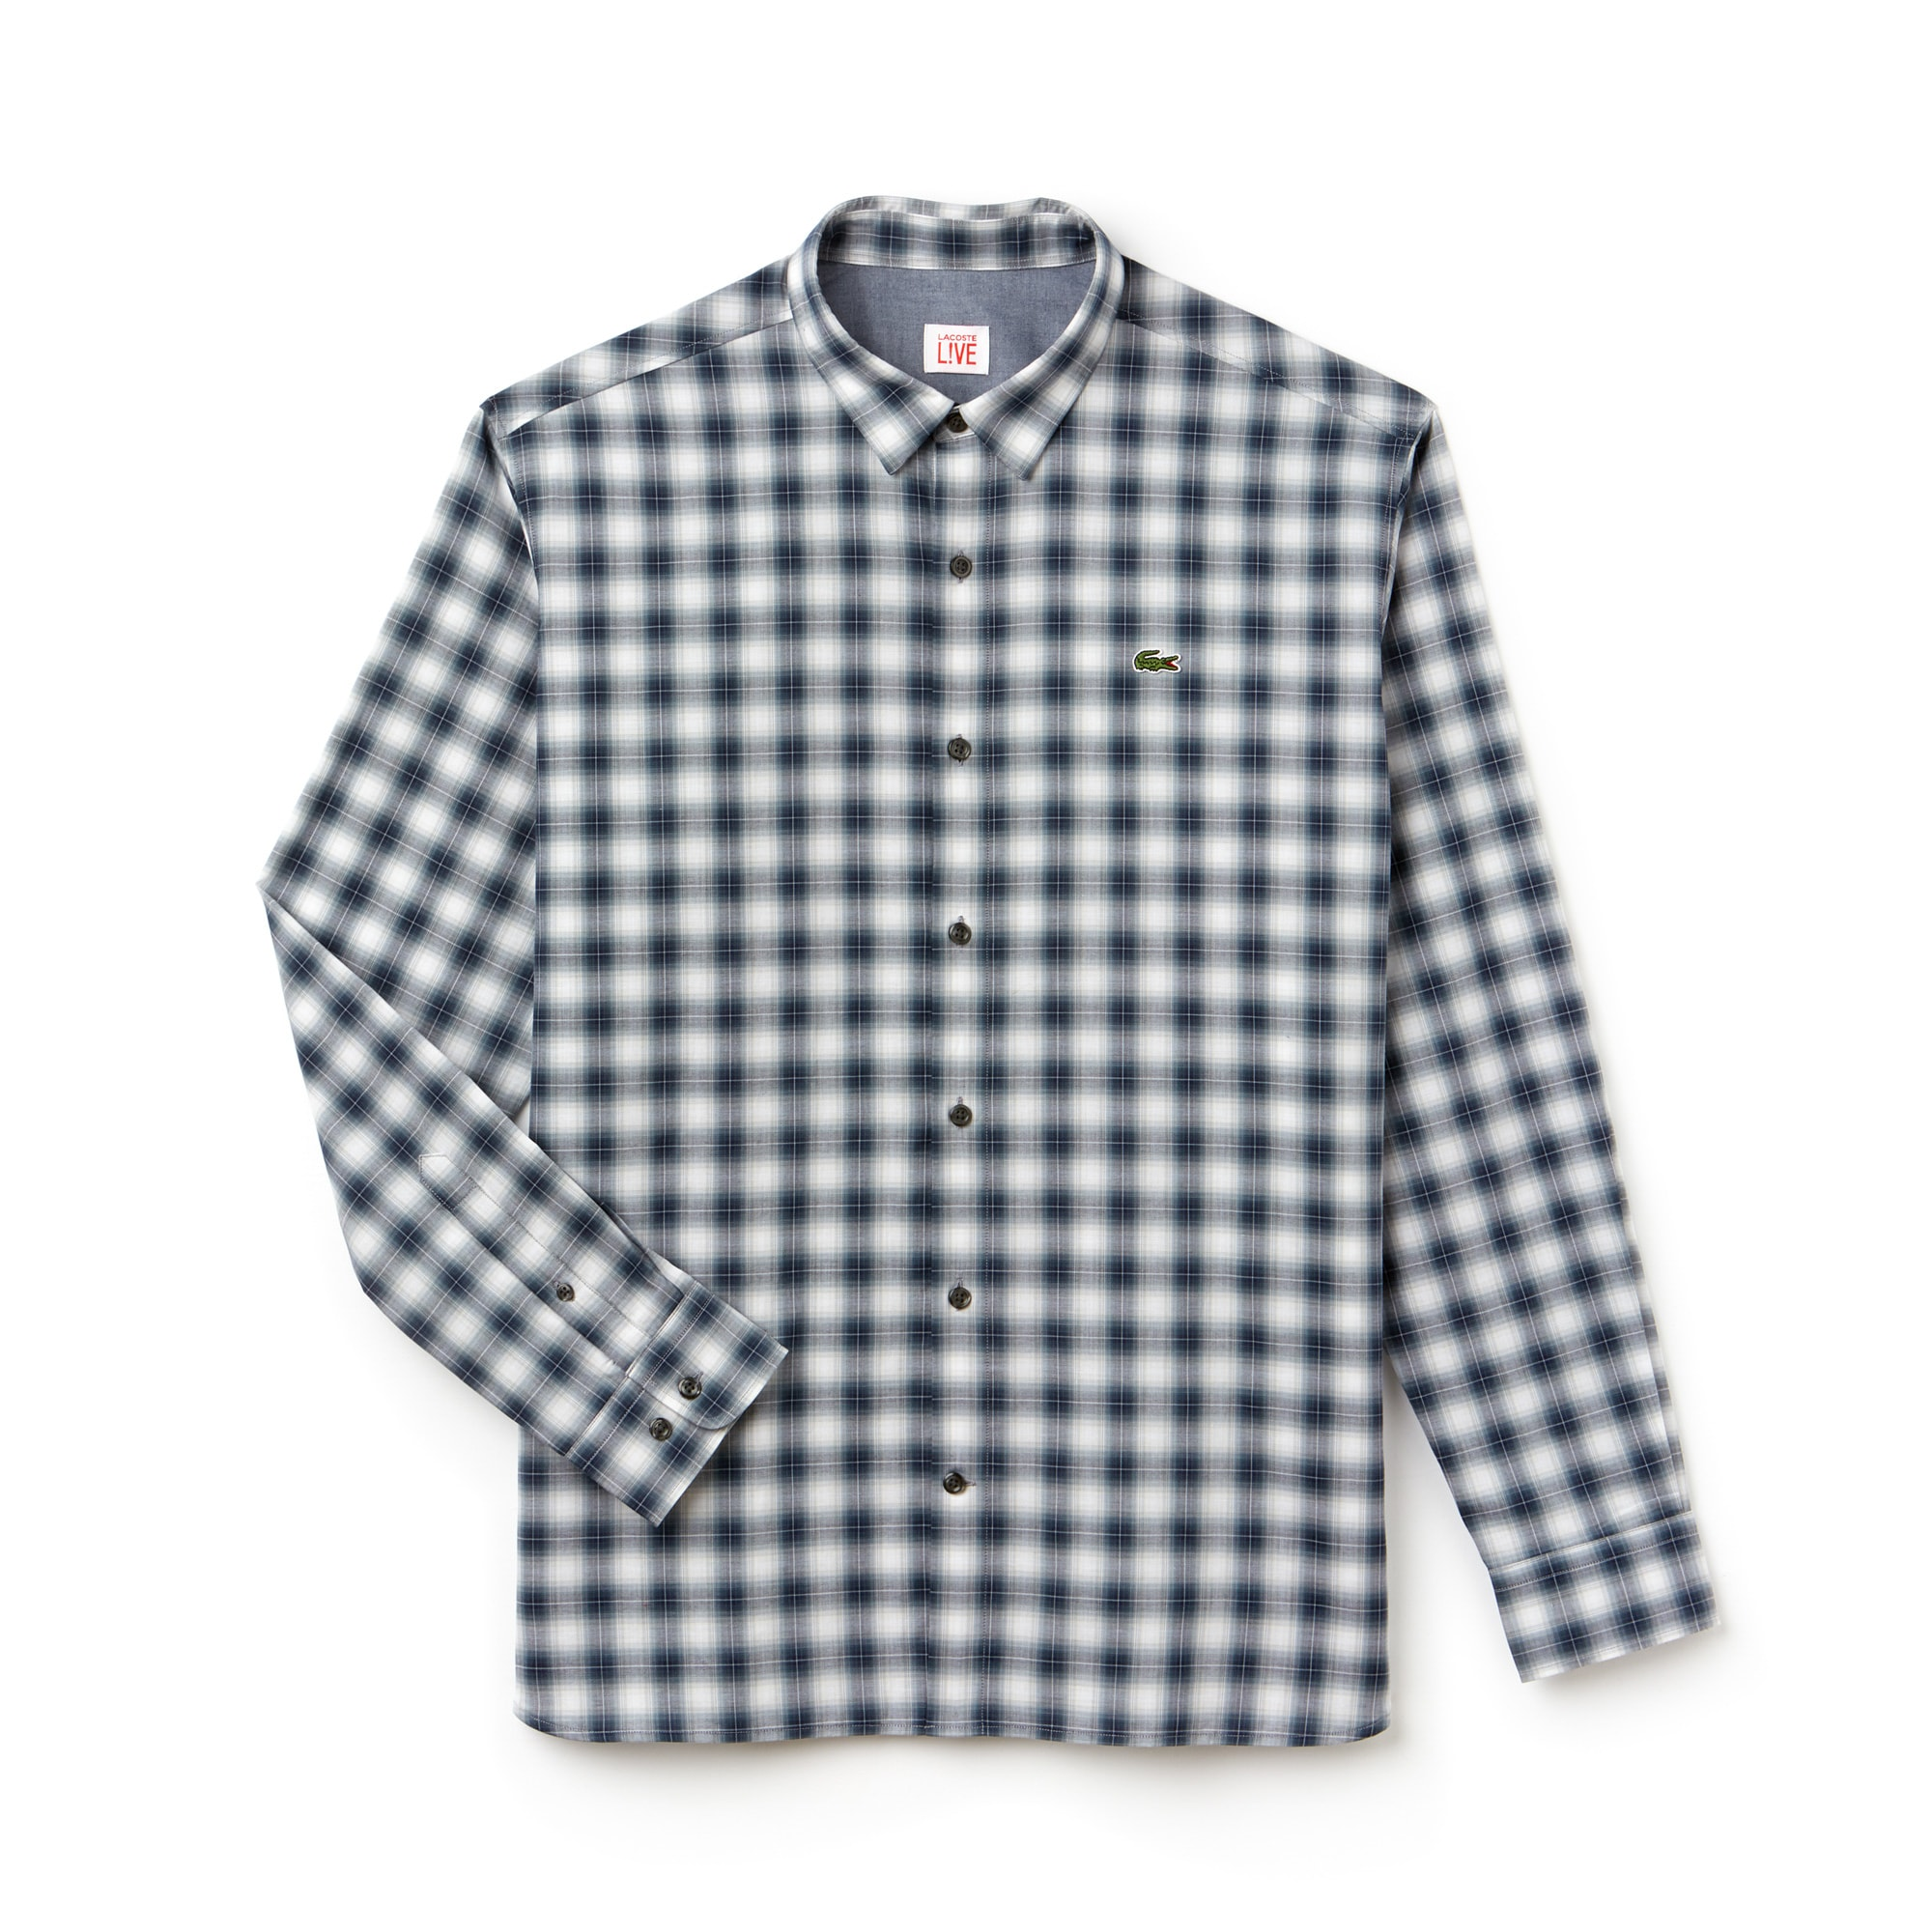 Men's LIVE Boxy Fit Check Poplin Shirt